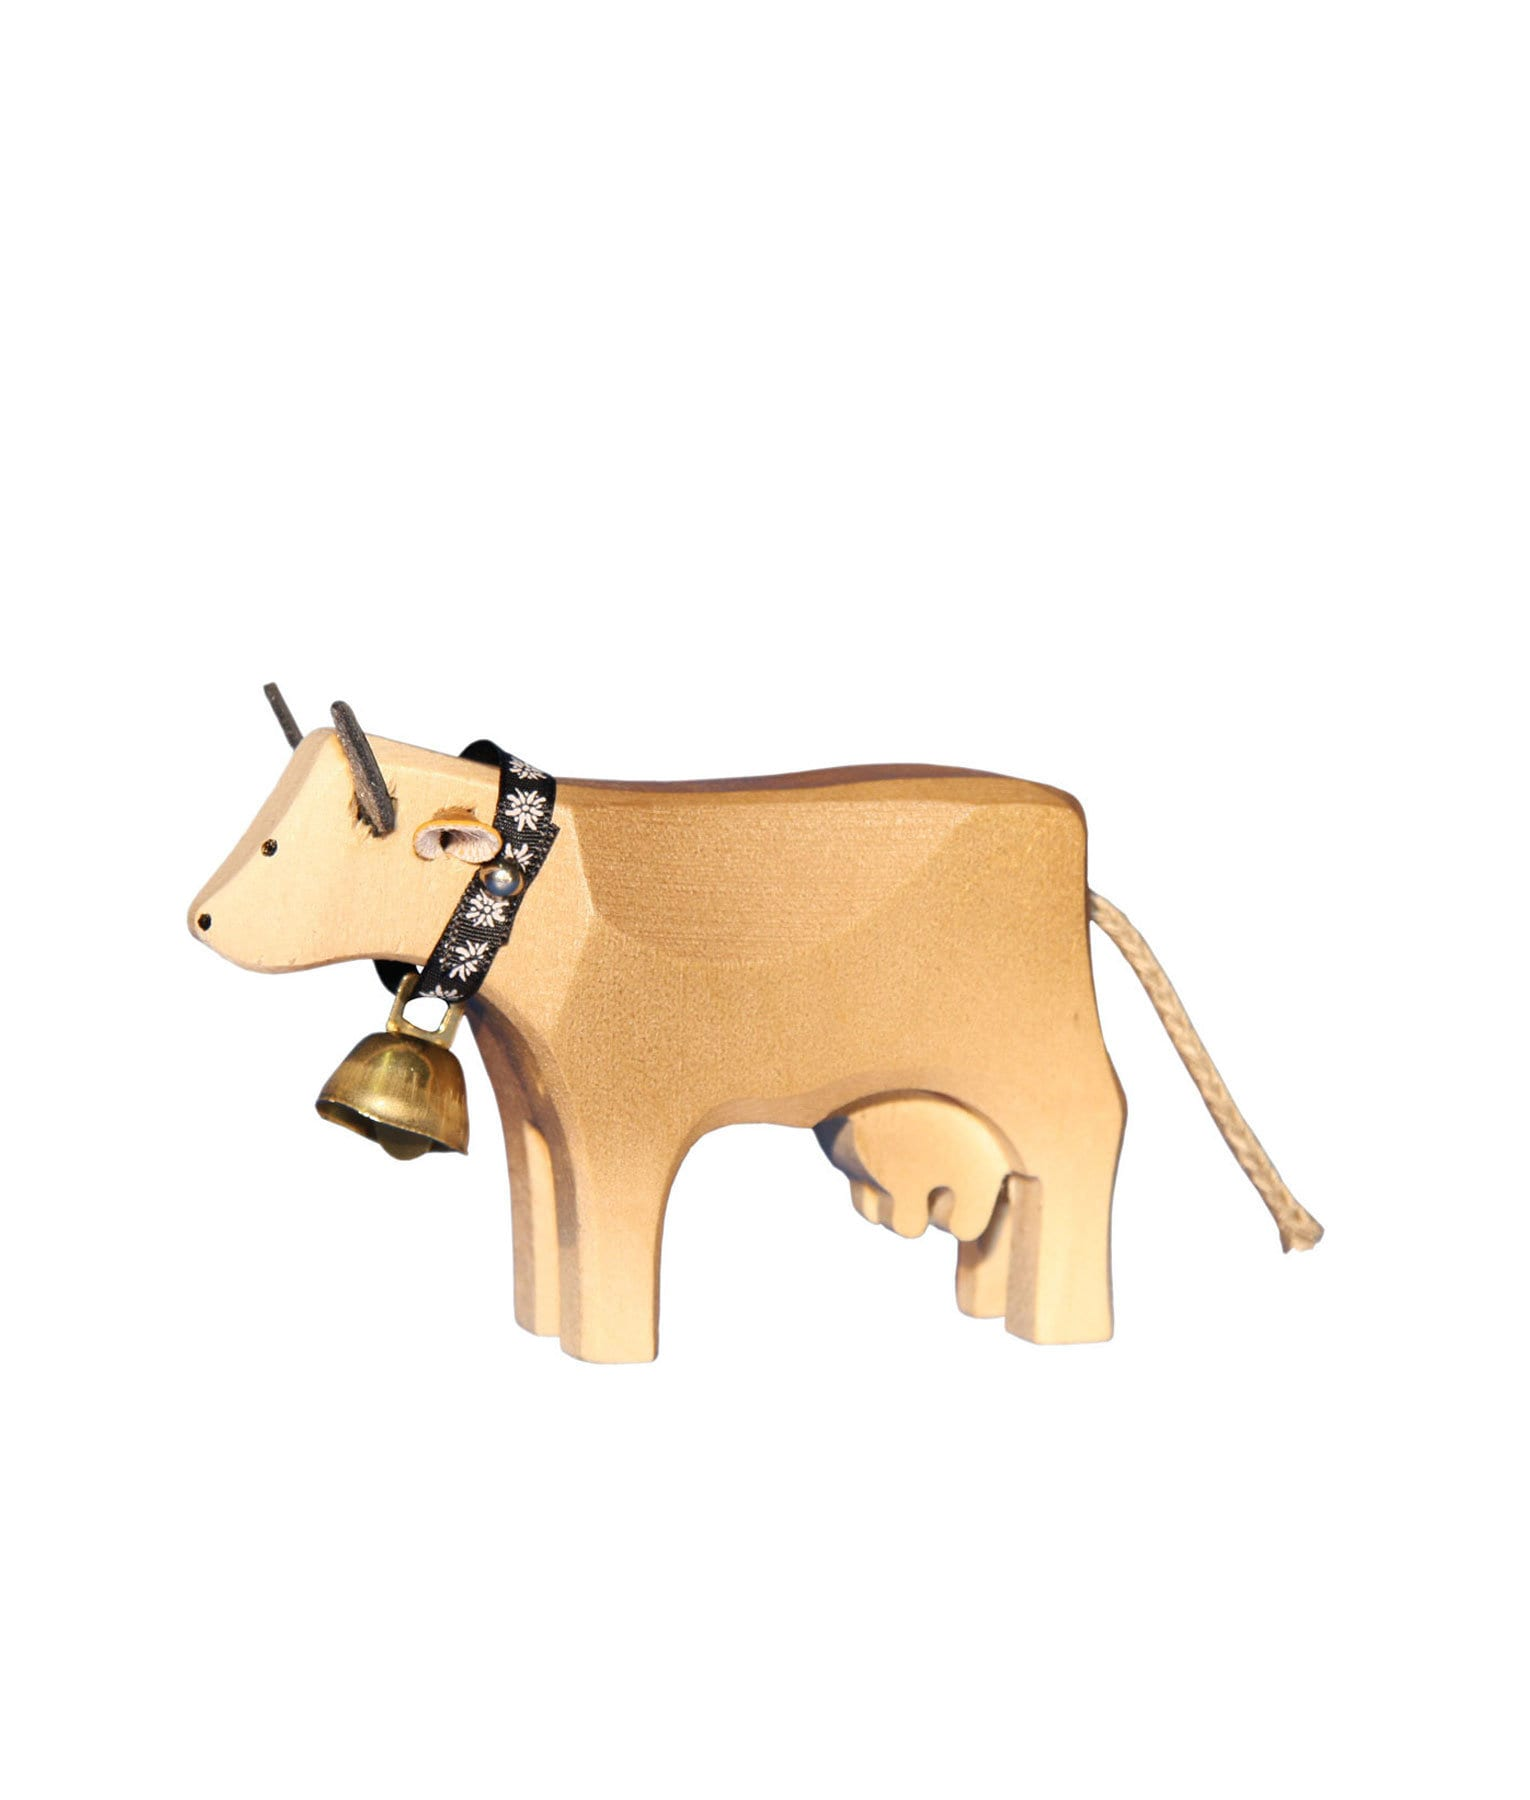 the-wooden-cow-trauffer-toys